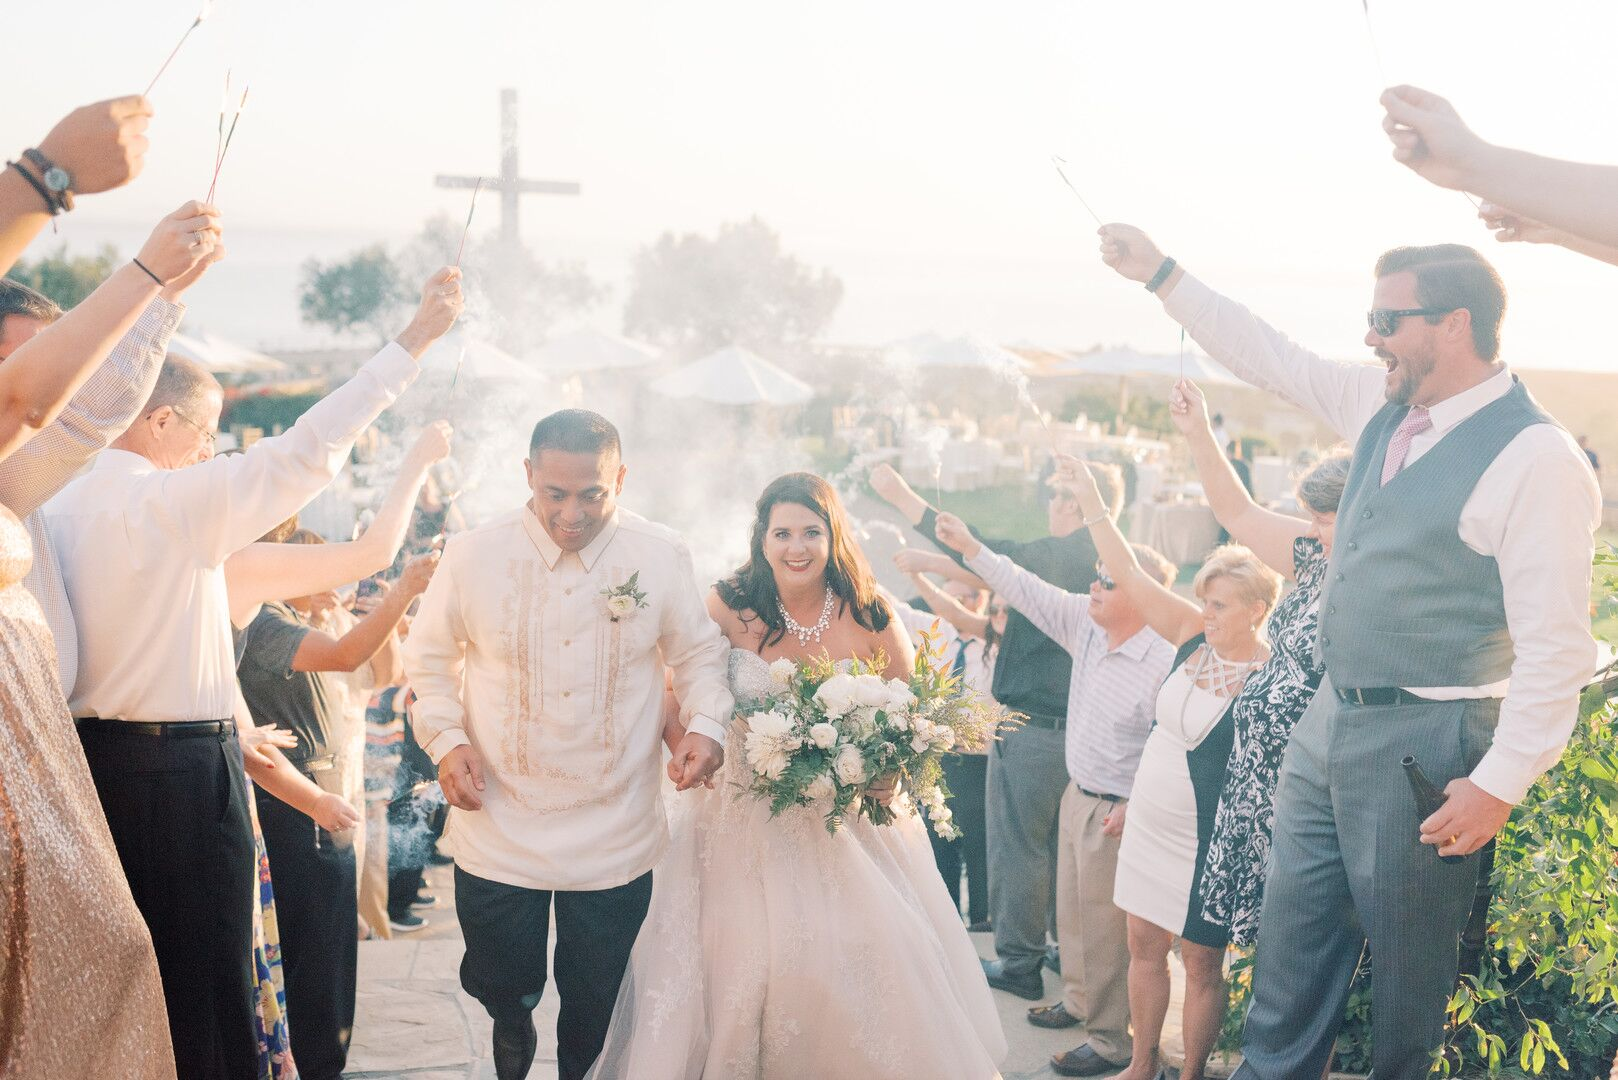 wwww.santabarbawedding.com | Planner: Vintage Heart Events | Ceremony Venue: Serra Cross Park | Photographer: Haley Richter Photography | Bride and Groom - After Ceremony